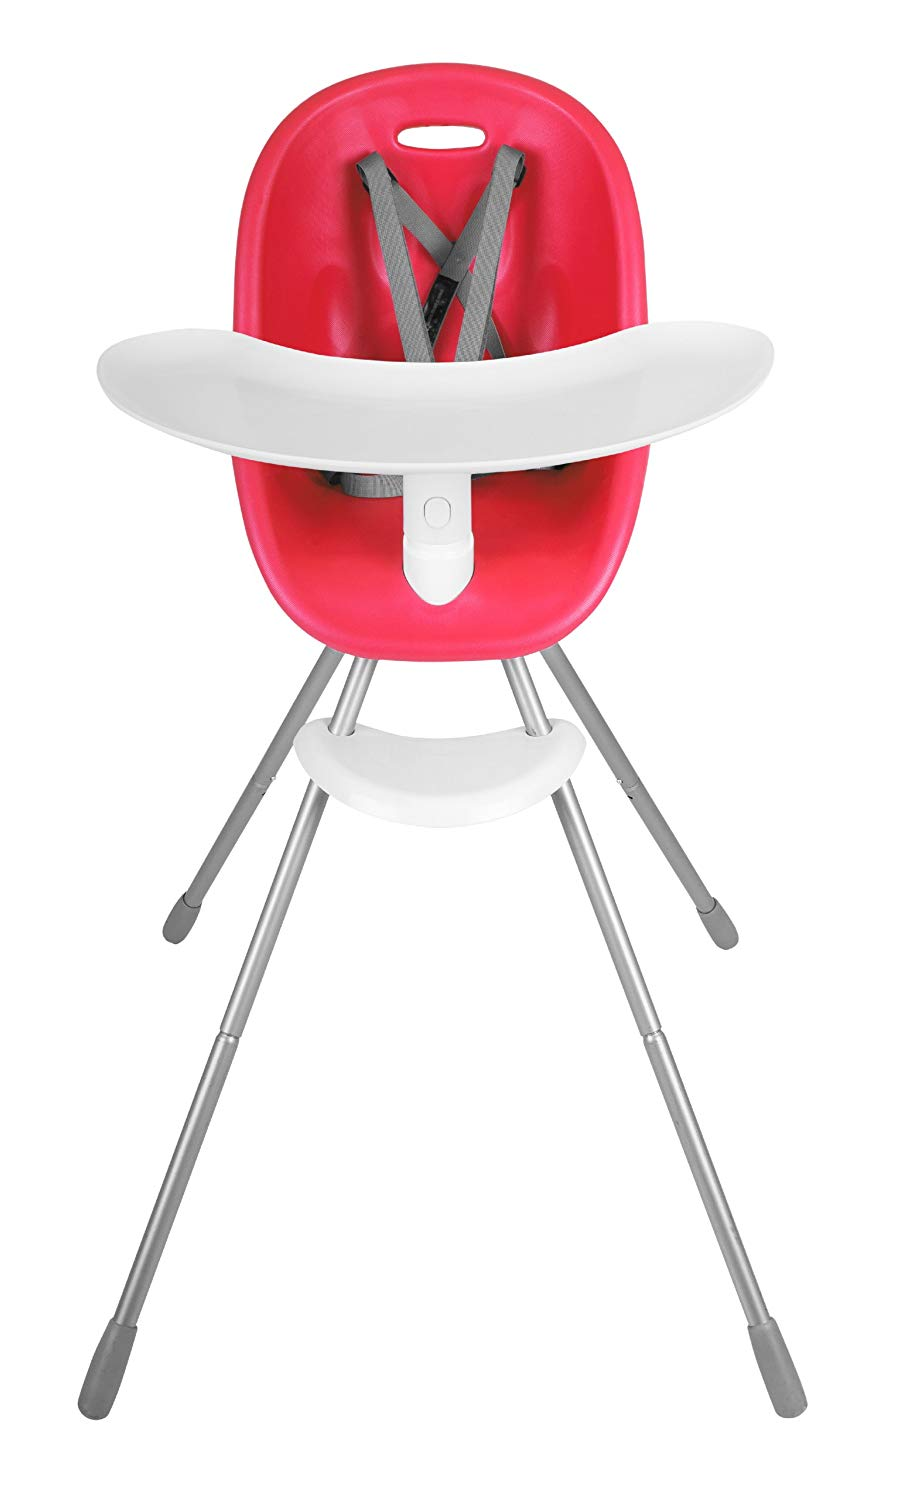 phil&teds Poppy Convertible High Chair, Cranberry